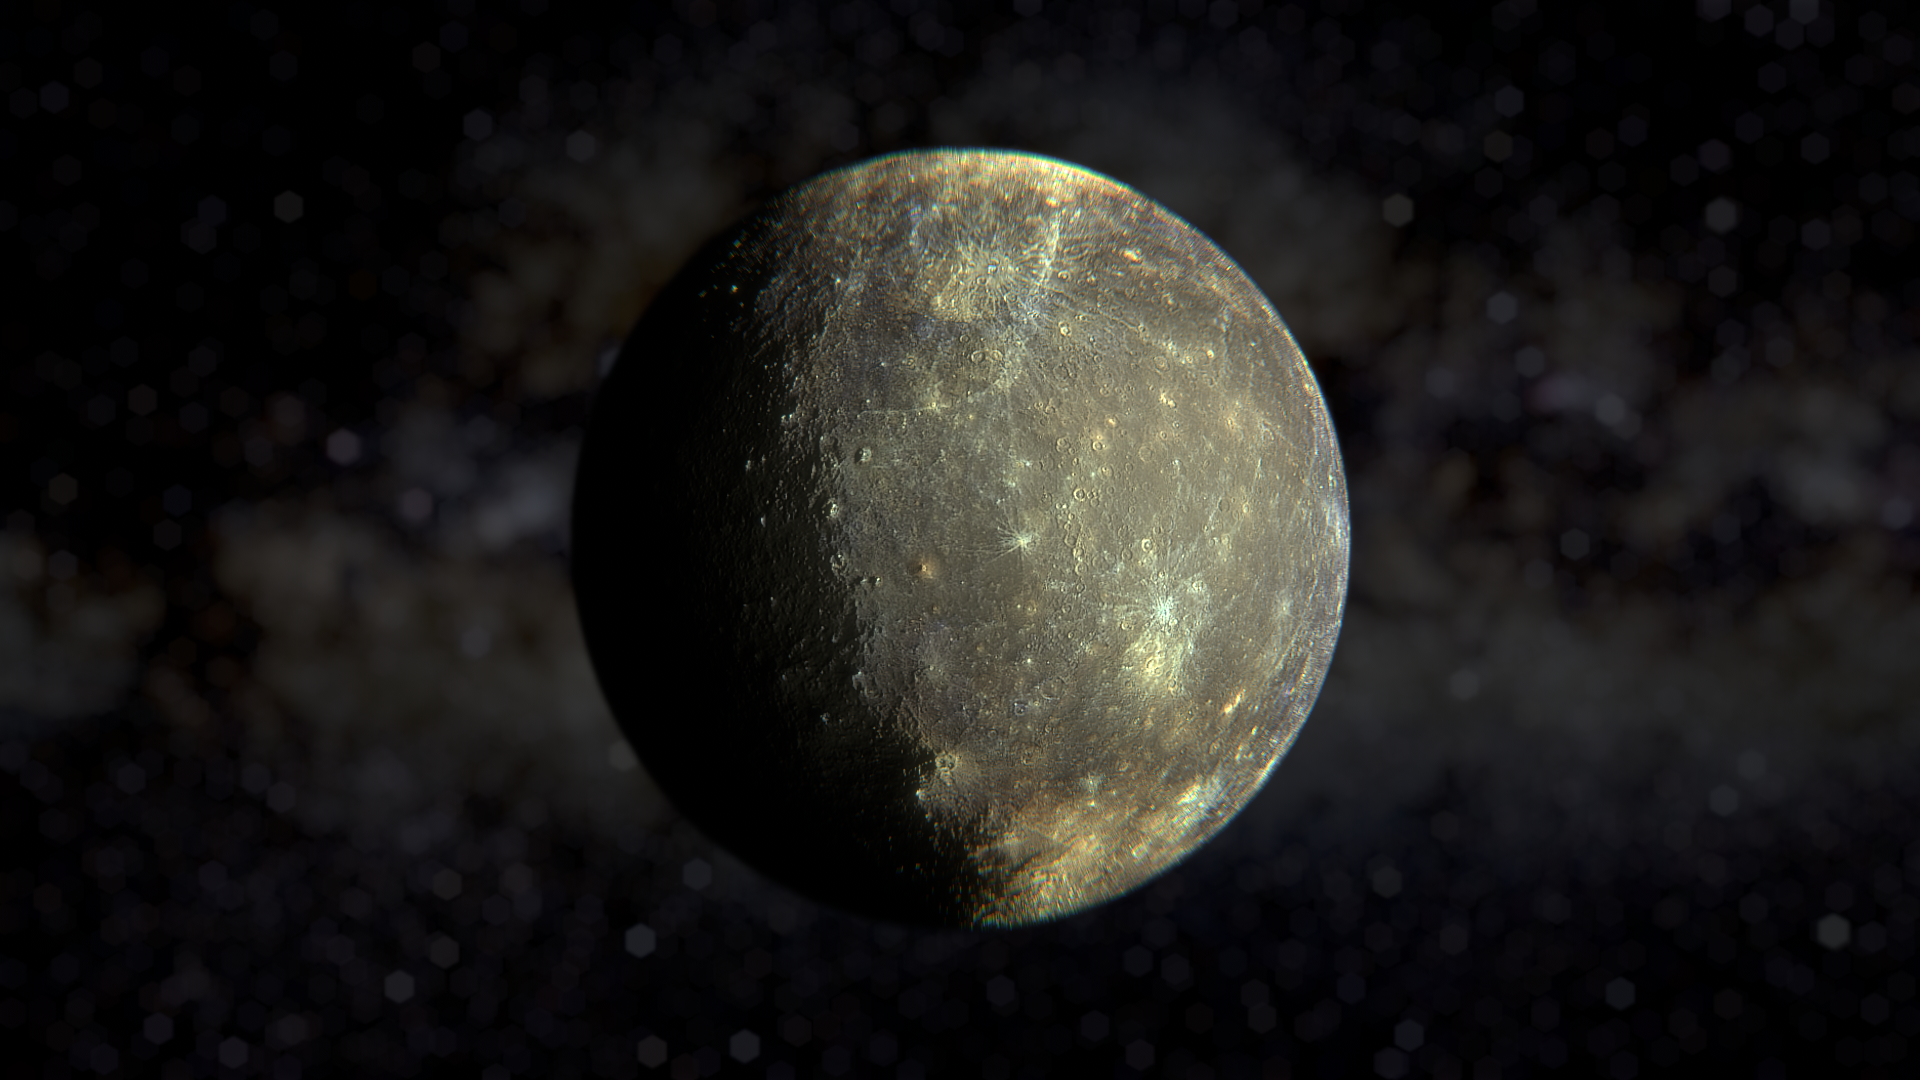 1920x1080 Top HQFX Pictures of Mercury, Full HD 1080p Desktop Pictures for PC&Mac, Laptop, Tablet, Mobile Phone